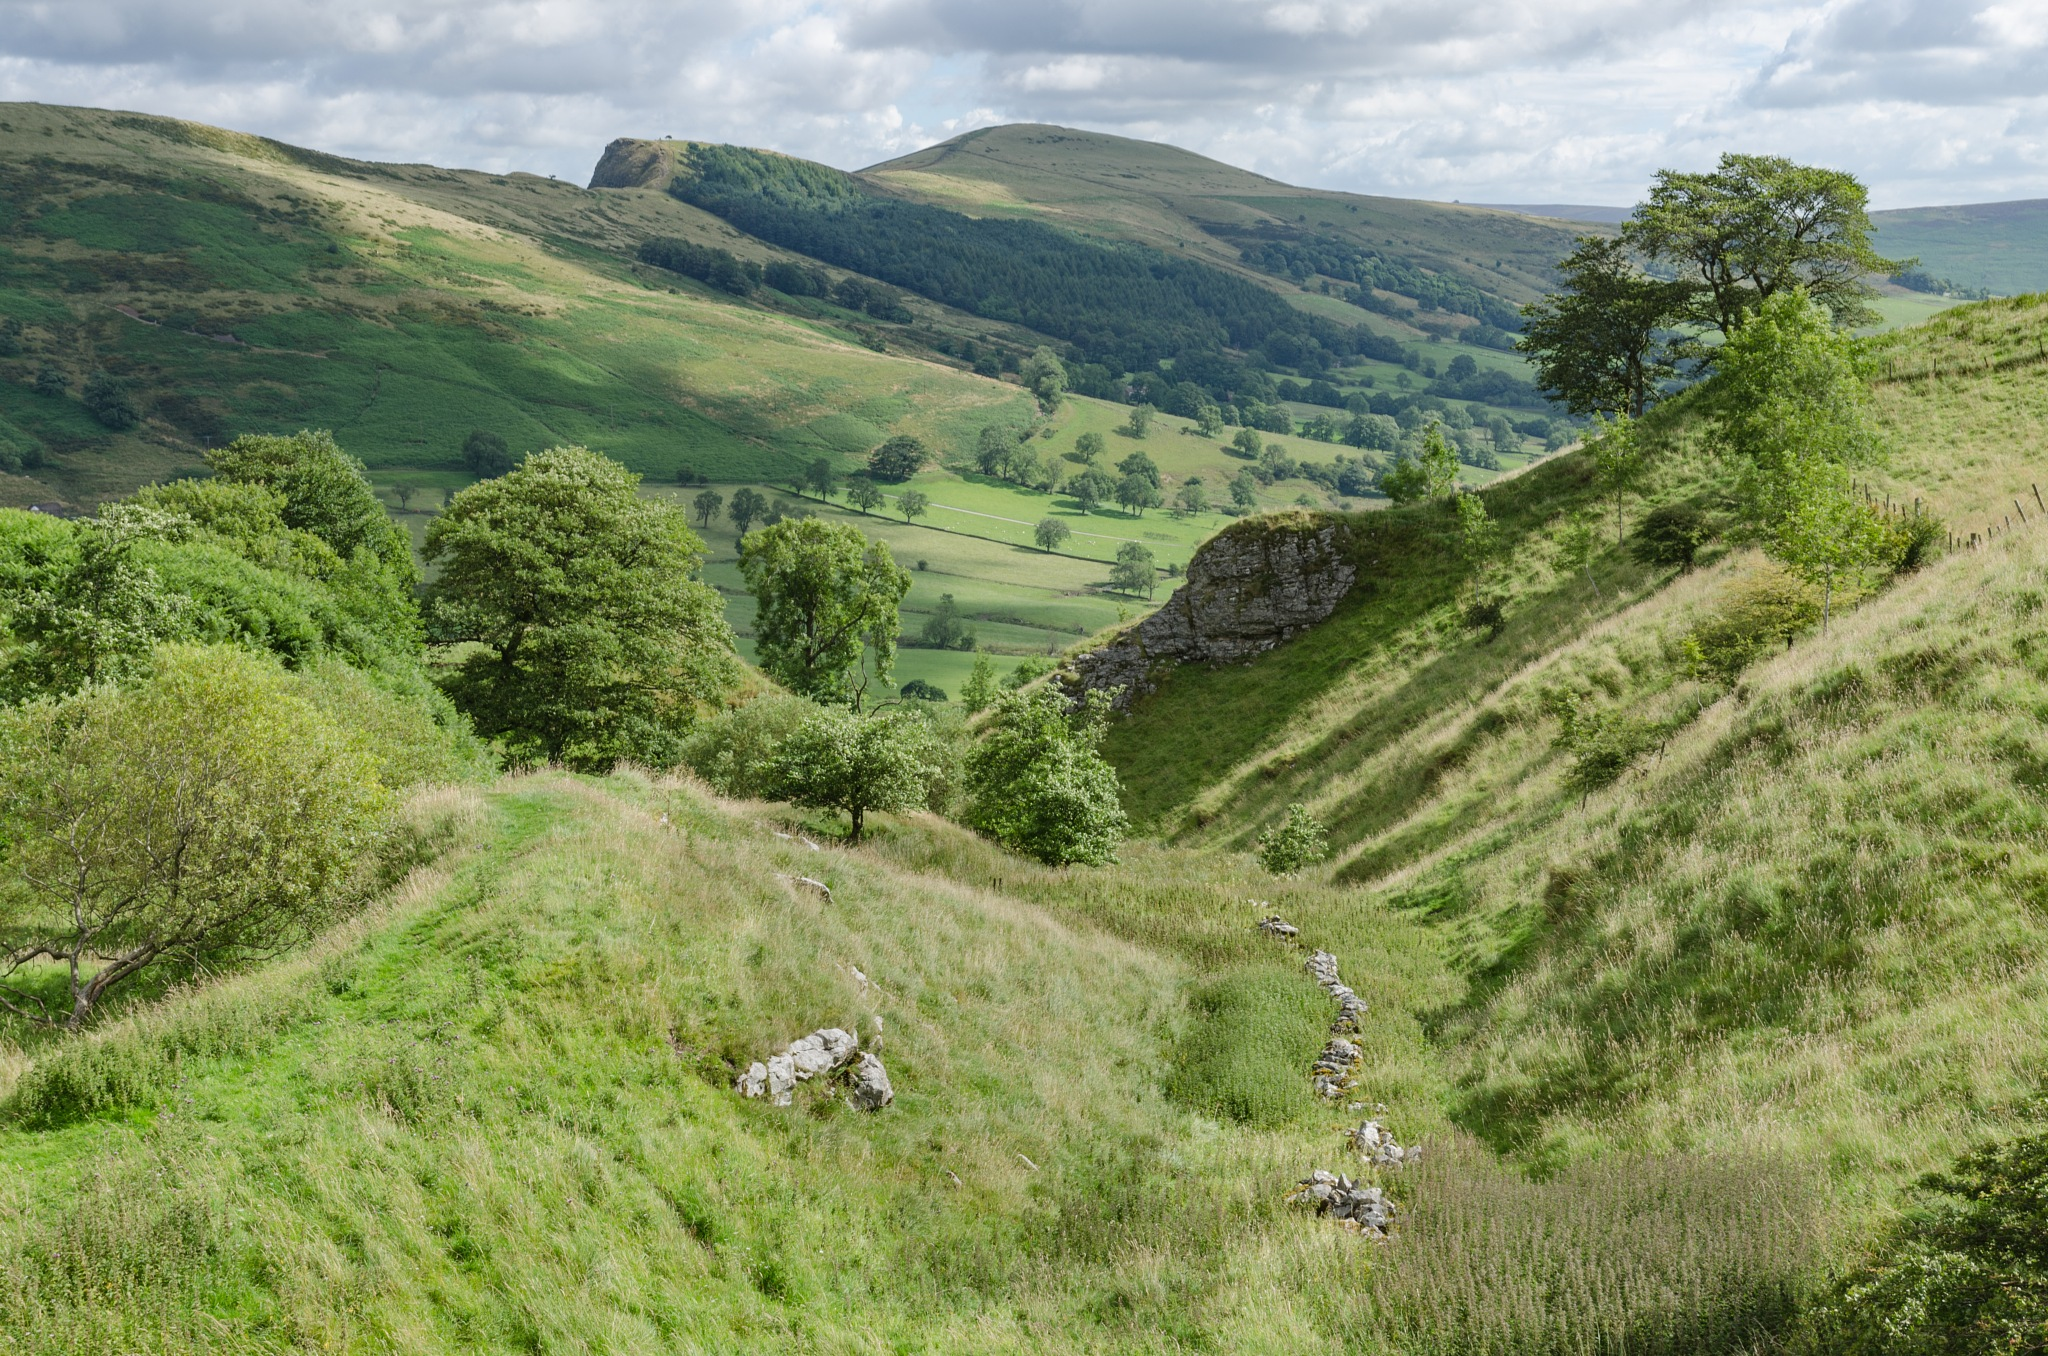 Lose Hill, Derbyshire by bfstubbs